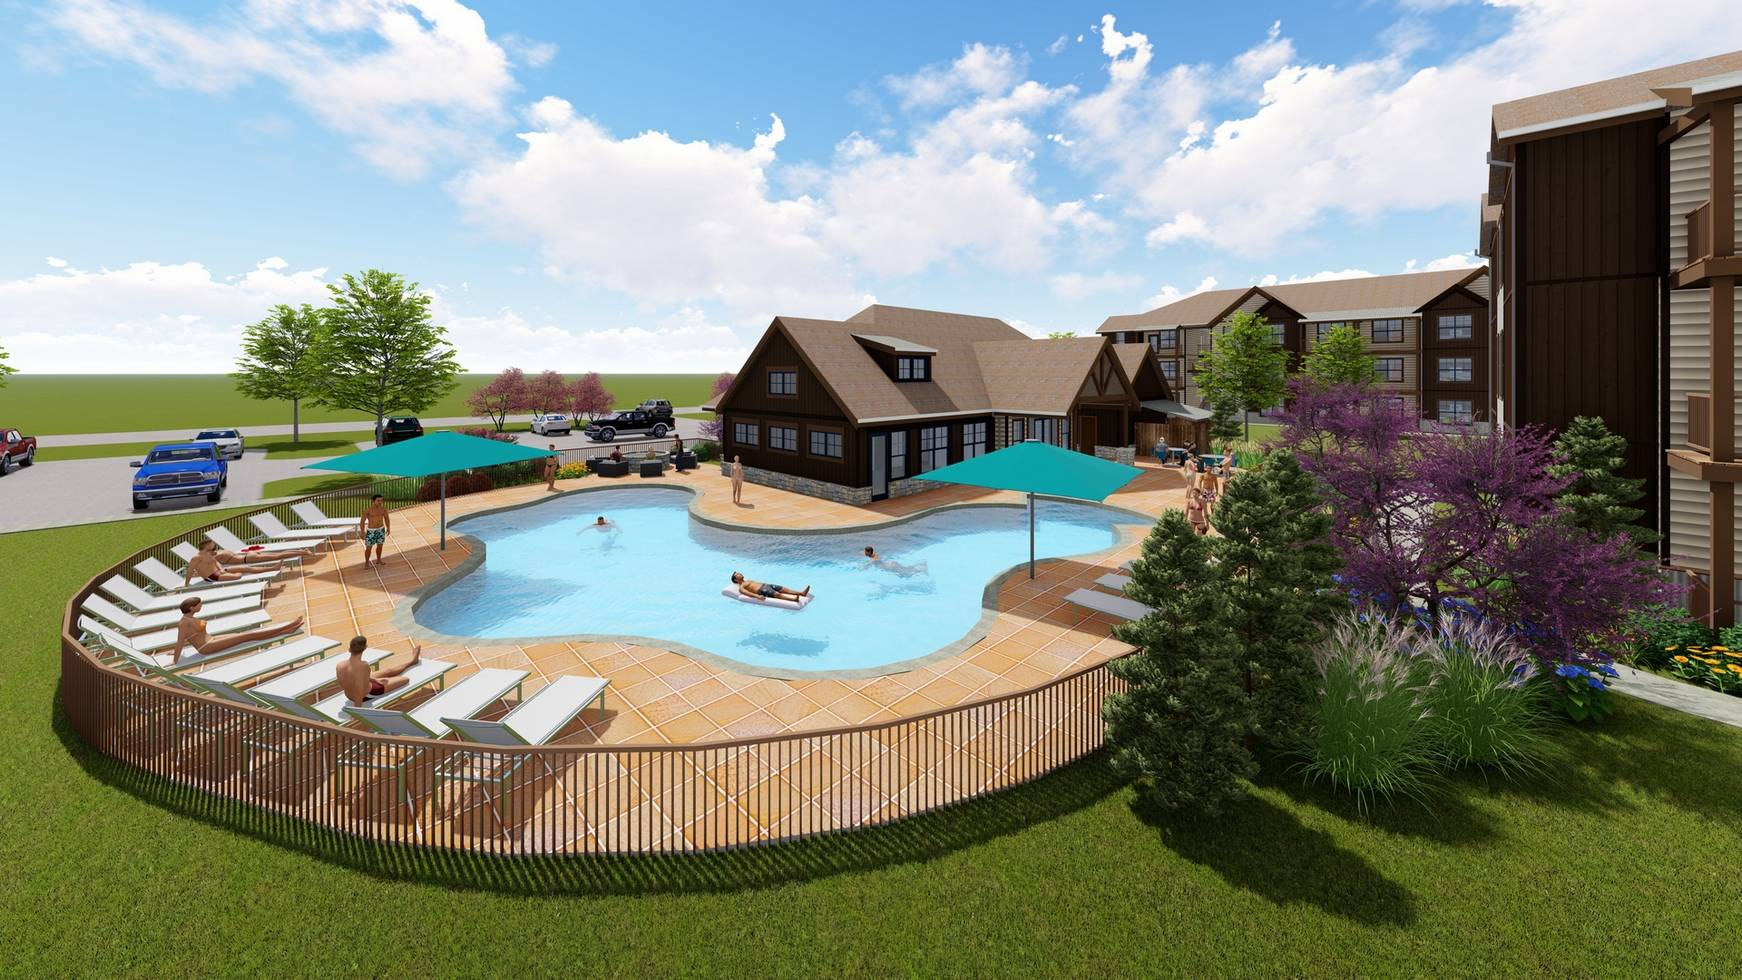 Rendering of swimming pool and community